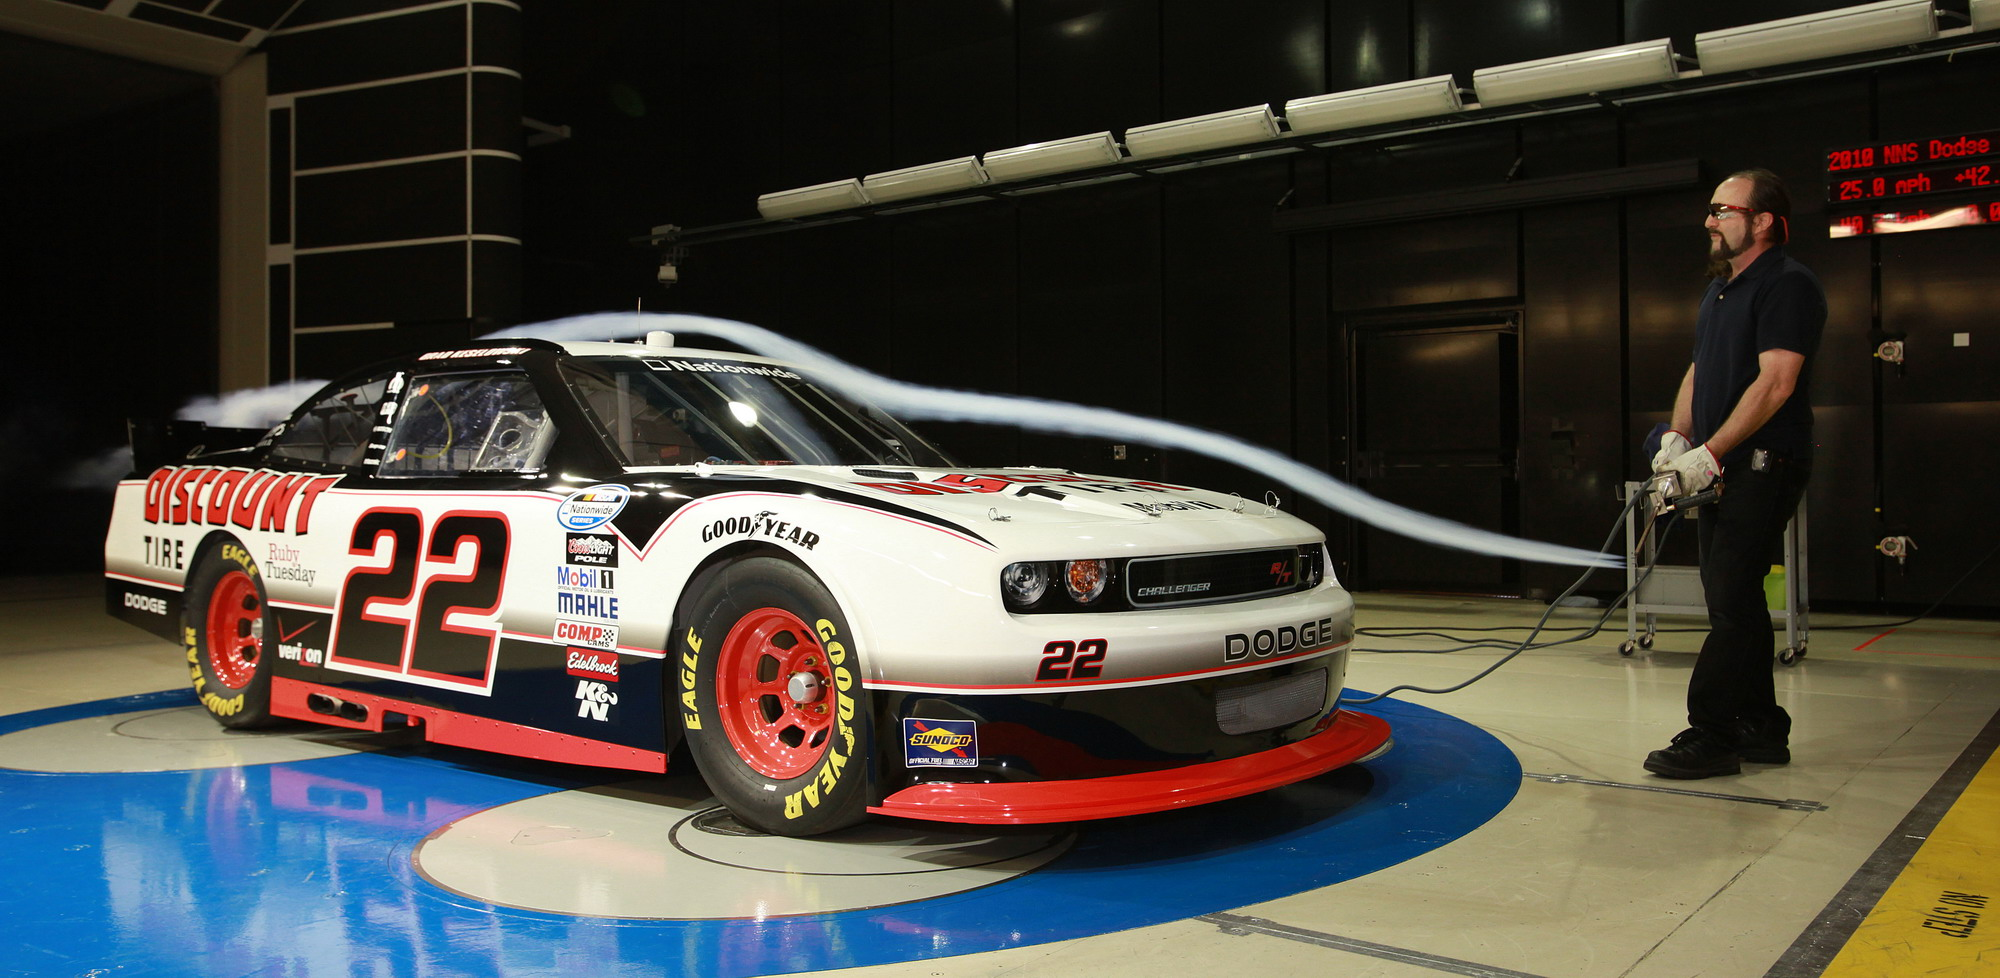 2010 Dodge Challenger Nascar Nationwide Series Race Car Top Speed